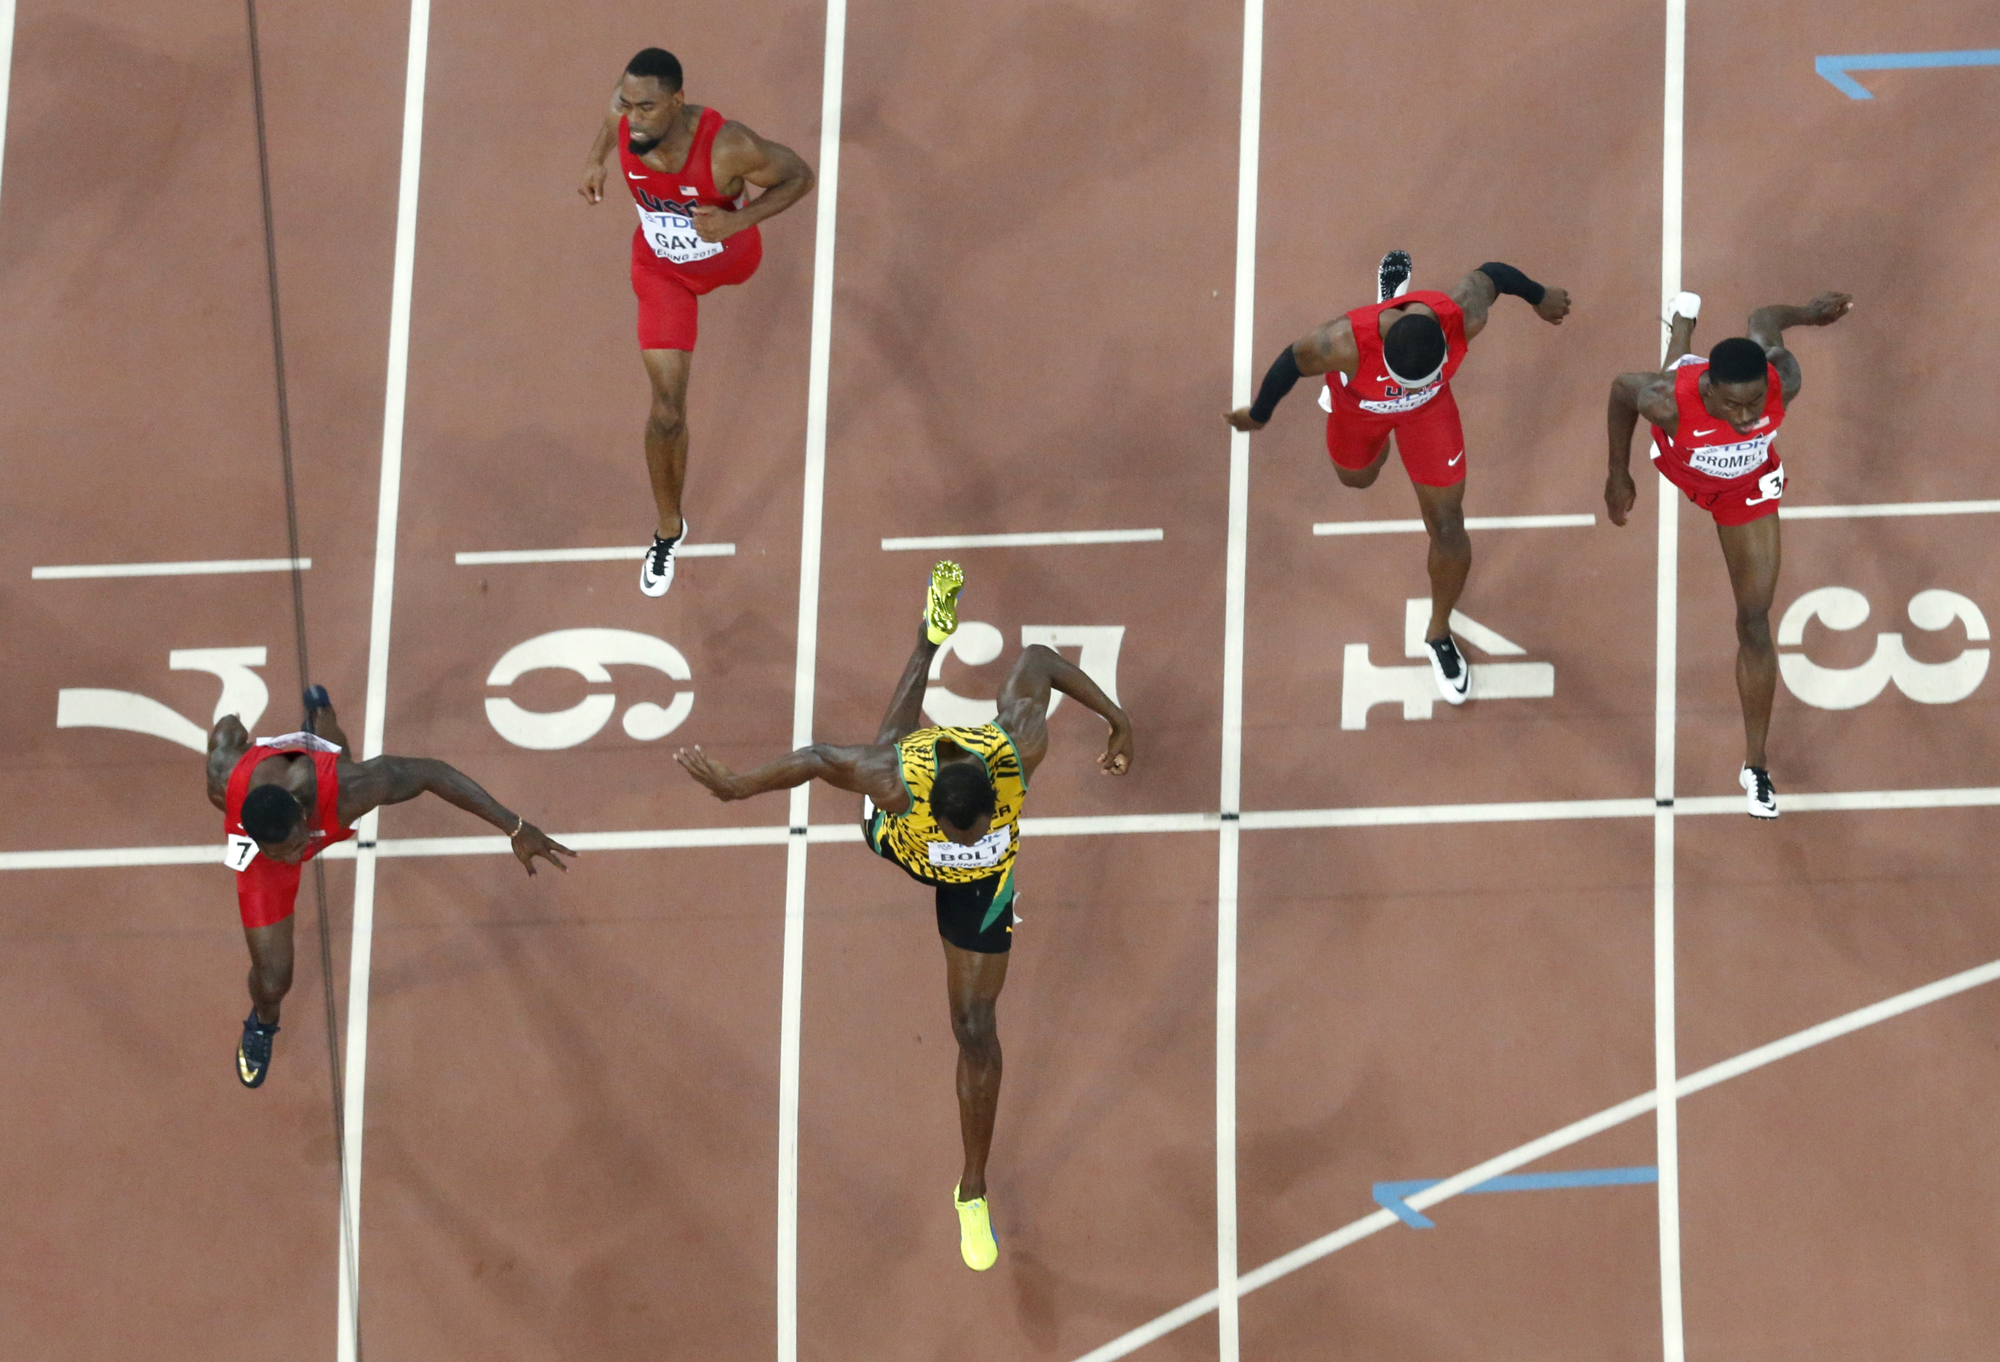 Jamaica's Usain Bolt, center, crosses the finish line to win the gold medal in the men's 100m ahead of United States' Justin Gatlin at the World Athletics Championships at the Bird's Nest stadium in Beijing, Sunday, Aug. 23, 2015.